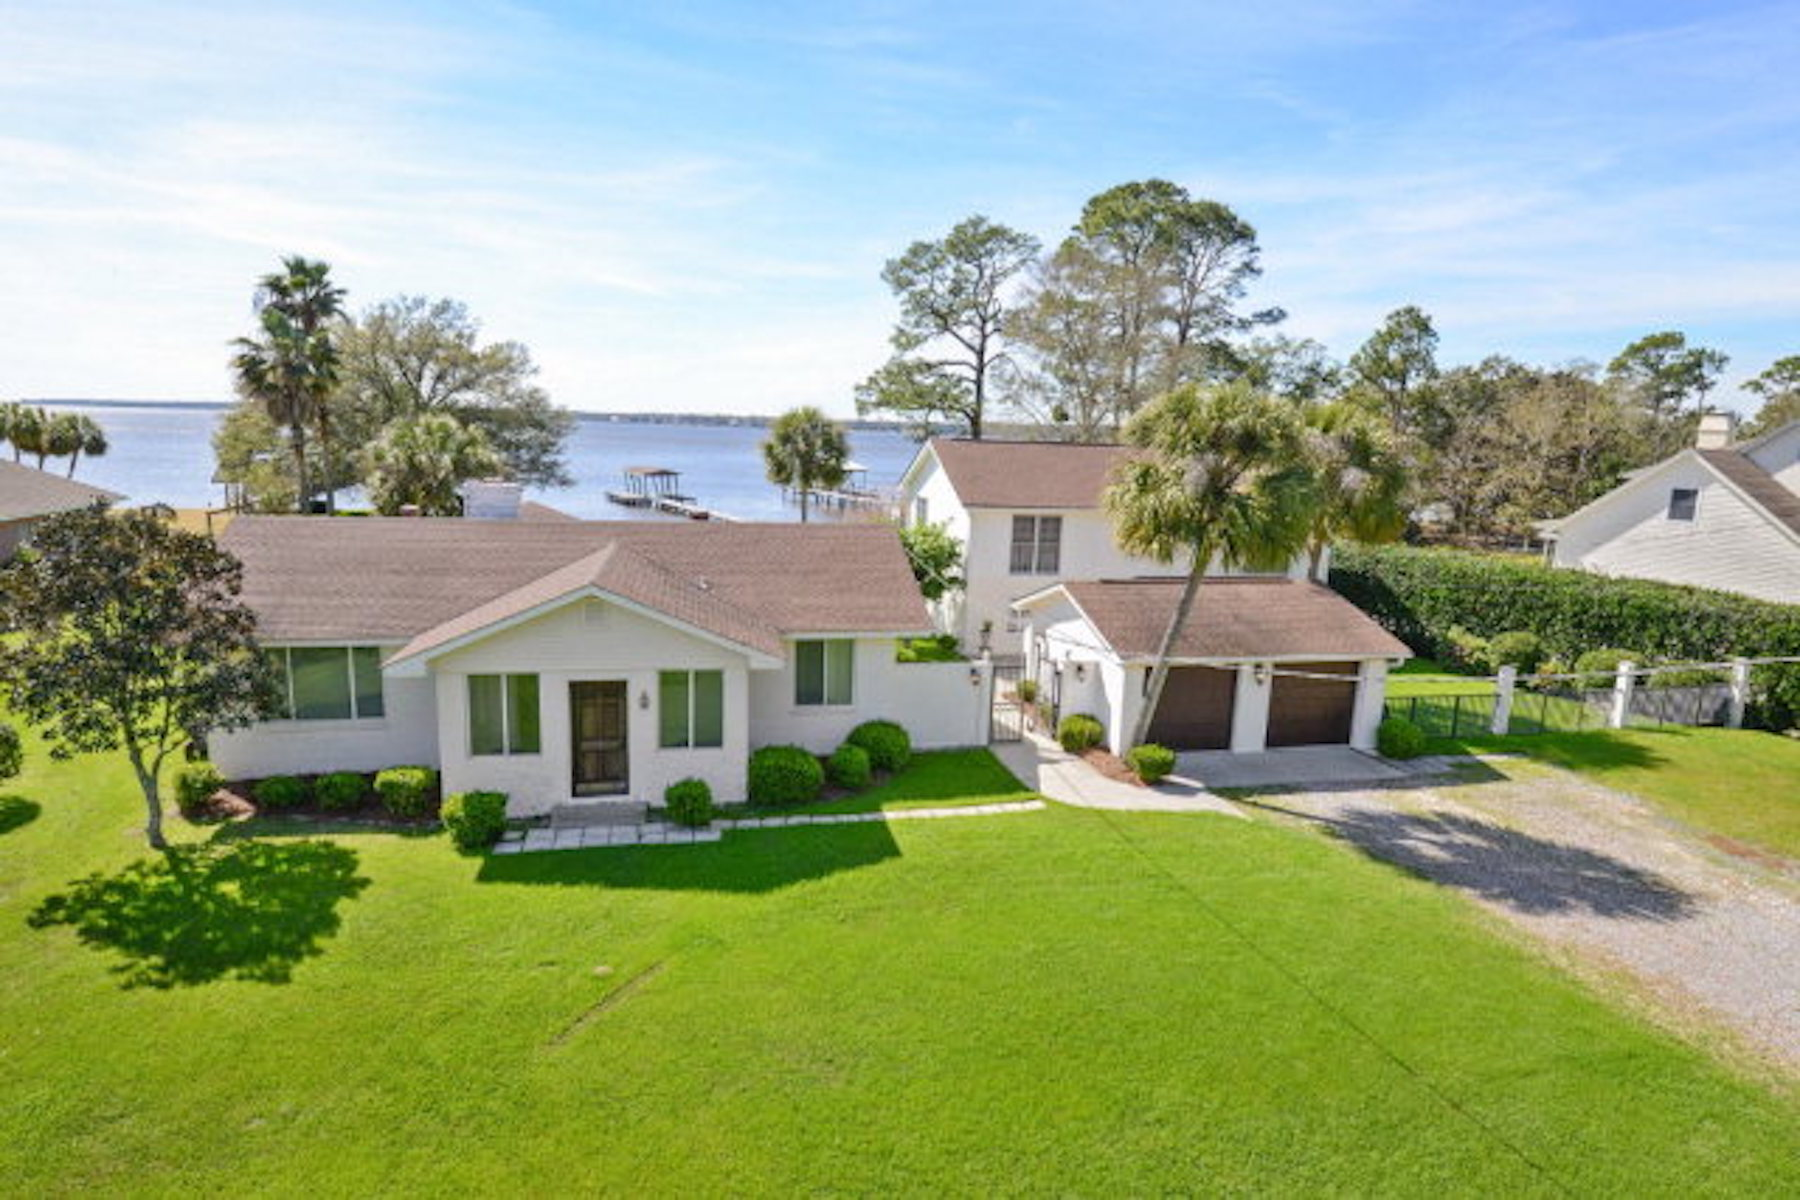 Single Family Home for Sale at Florida Bayfront Home 1079 Perdido Manor Pensacola, Florida, 32506 United States